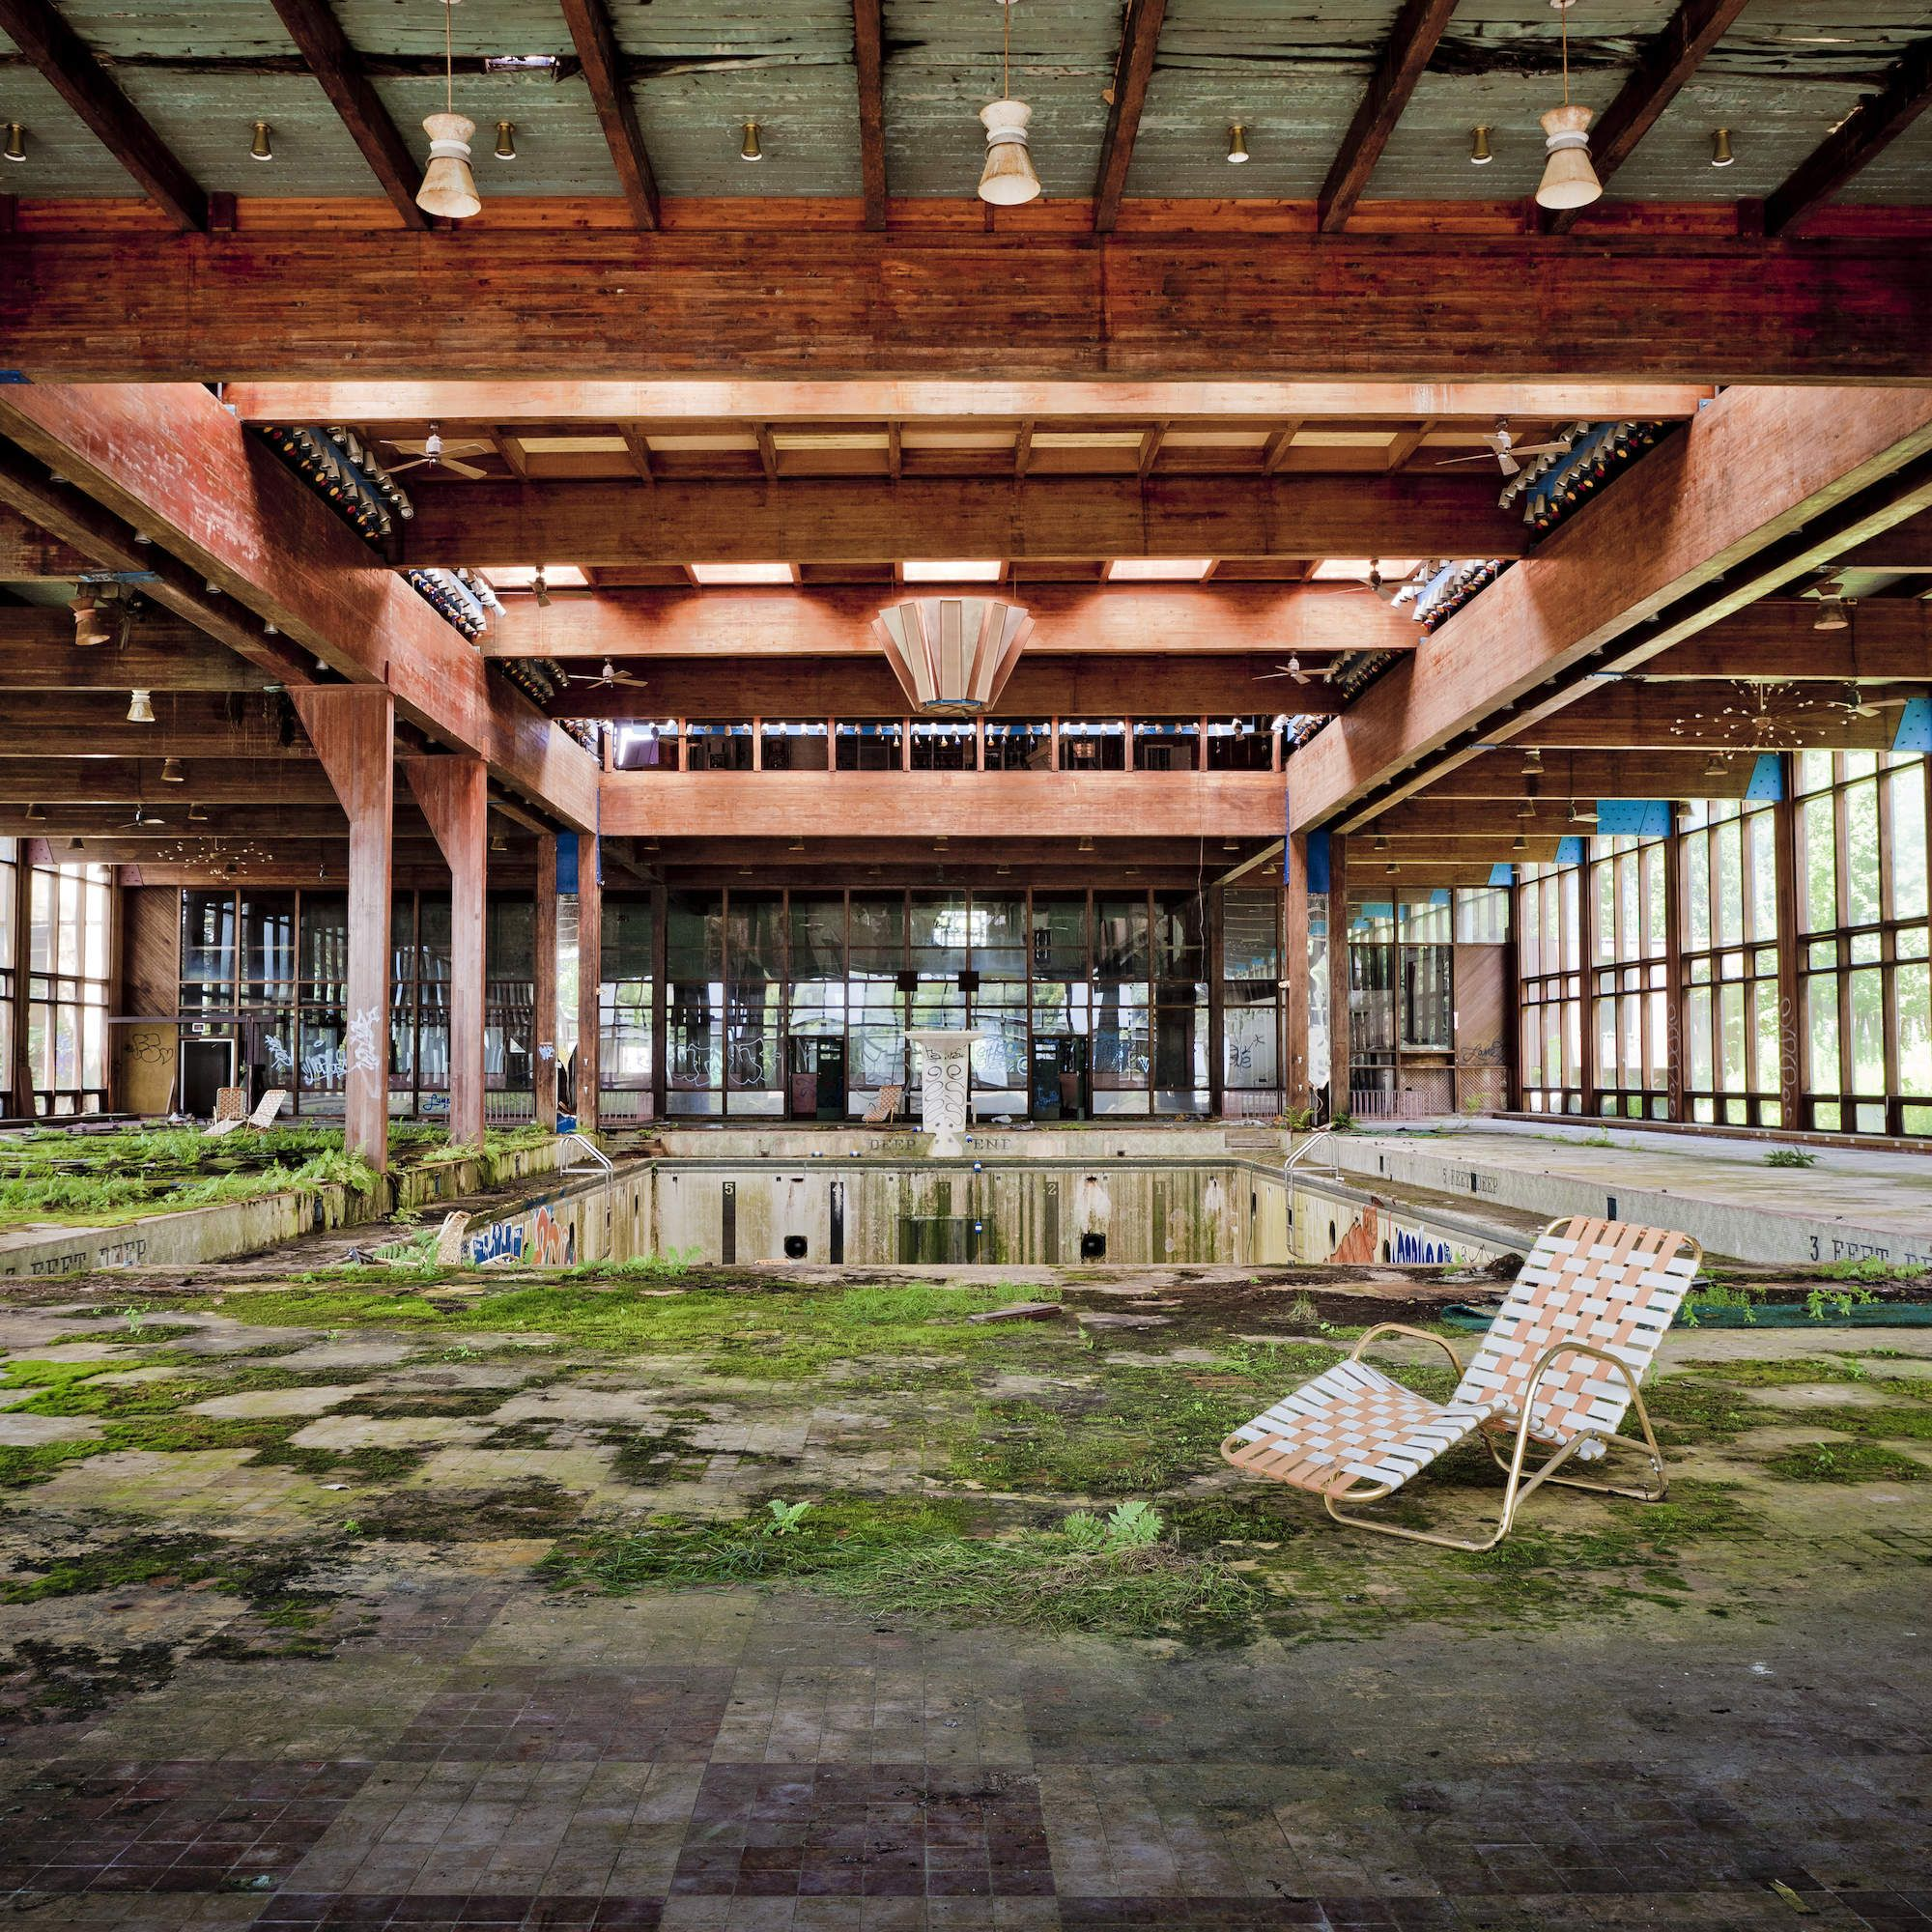 The 10 Most Insane Abandoned Places In New York State